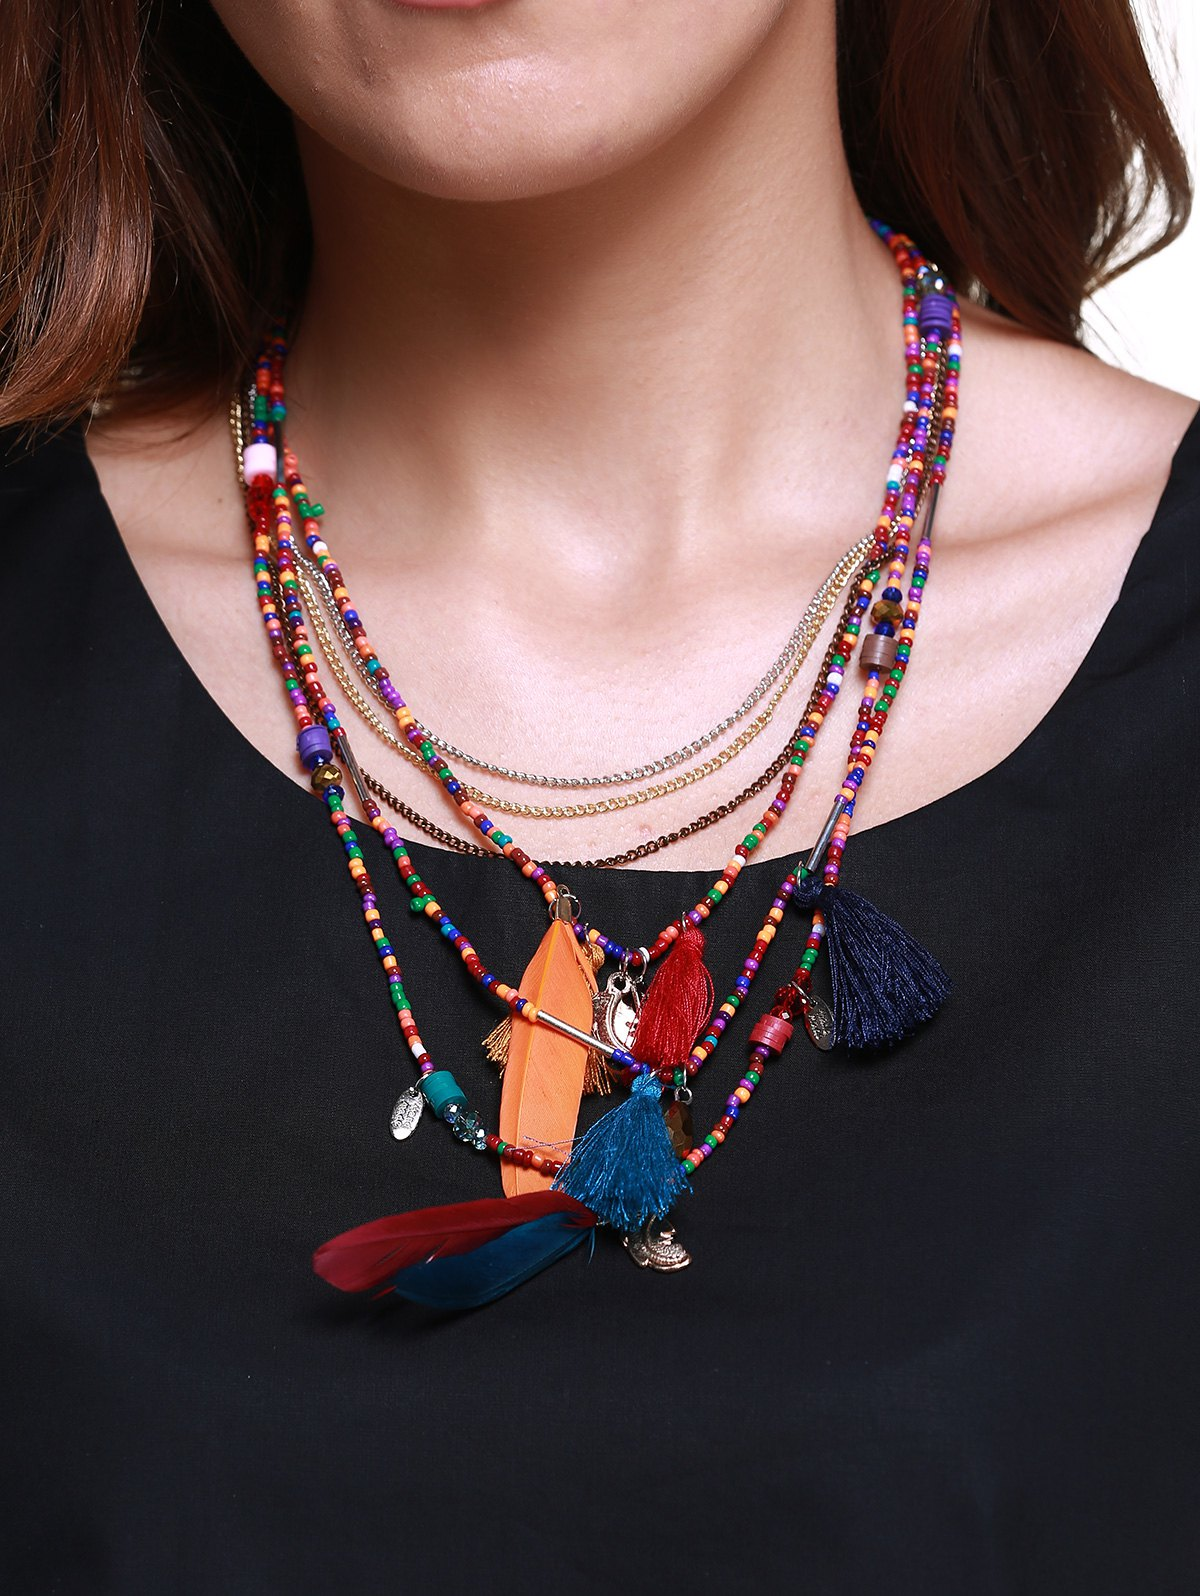 Ethnique Multilayer Faux Feather Tassel collier de perles pour les femmes - multicolorcolore